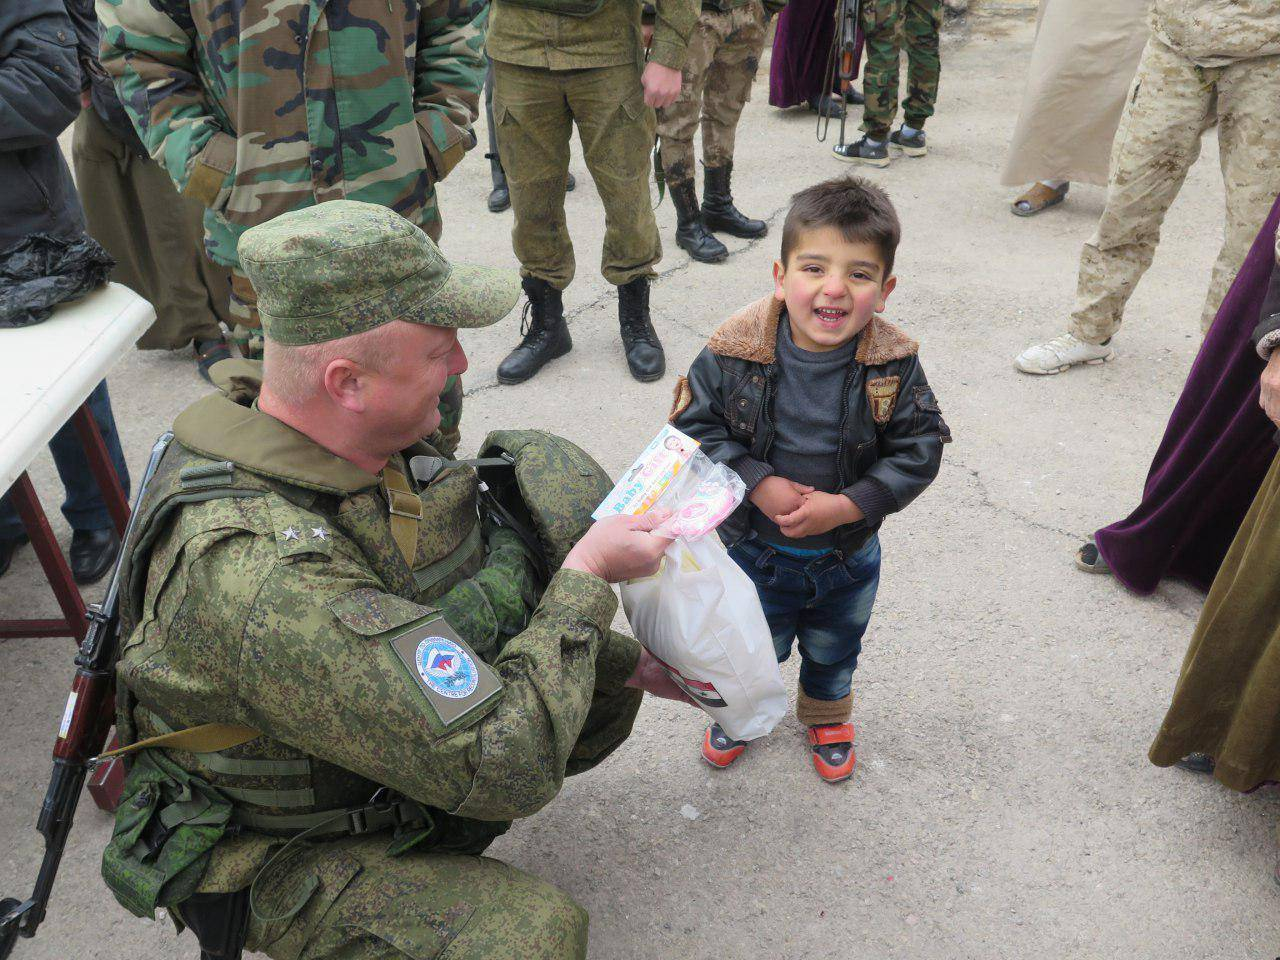 Shukran, Russia: in the south of Syria, another city is returning to peaceful life